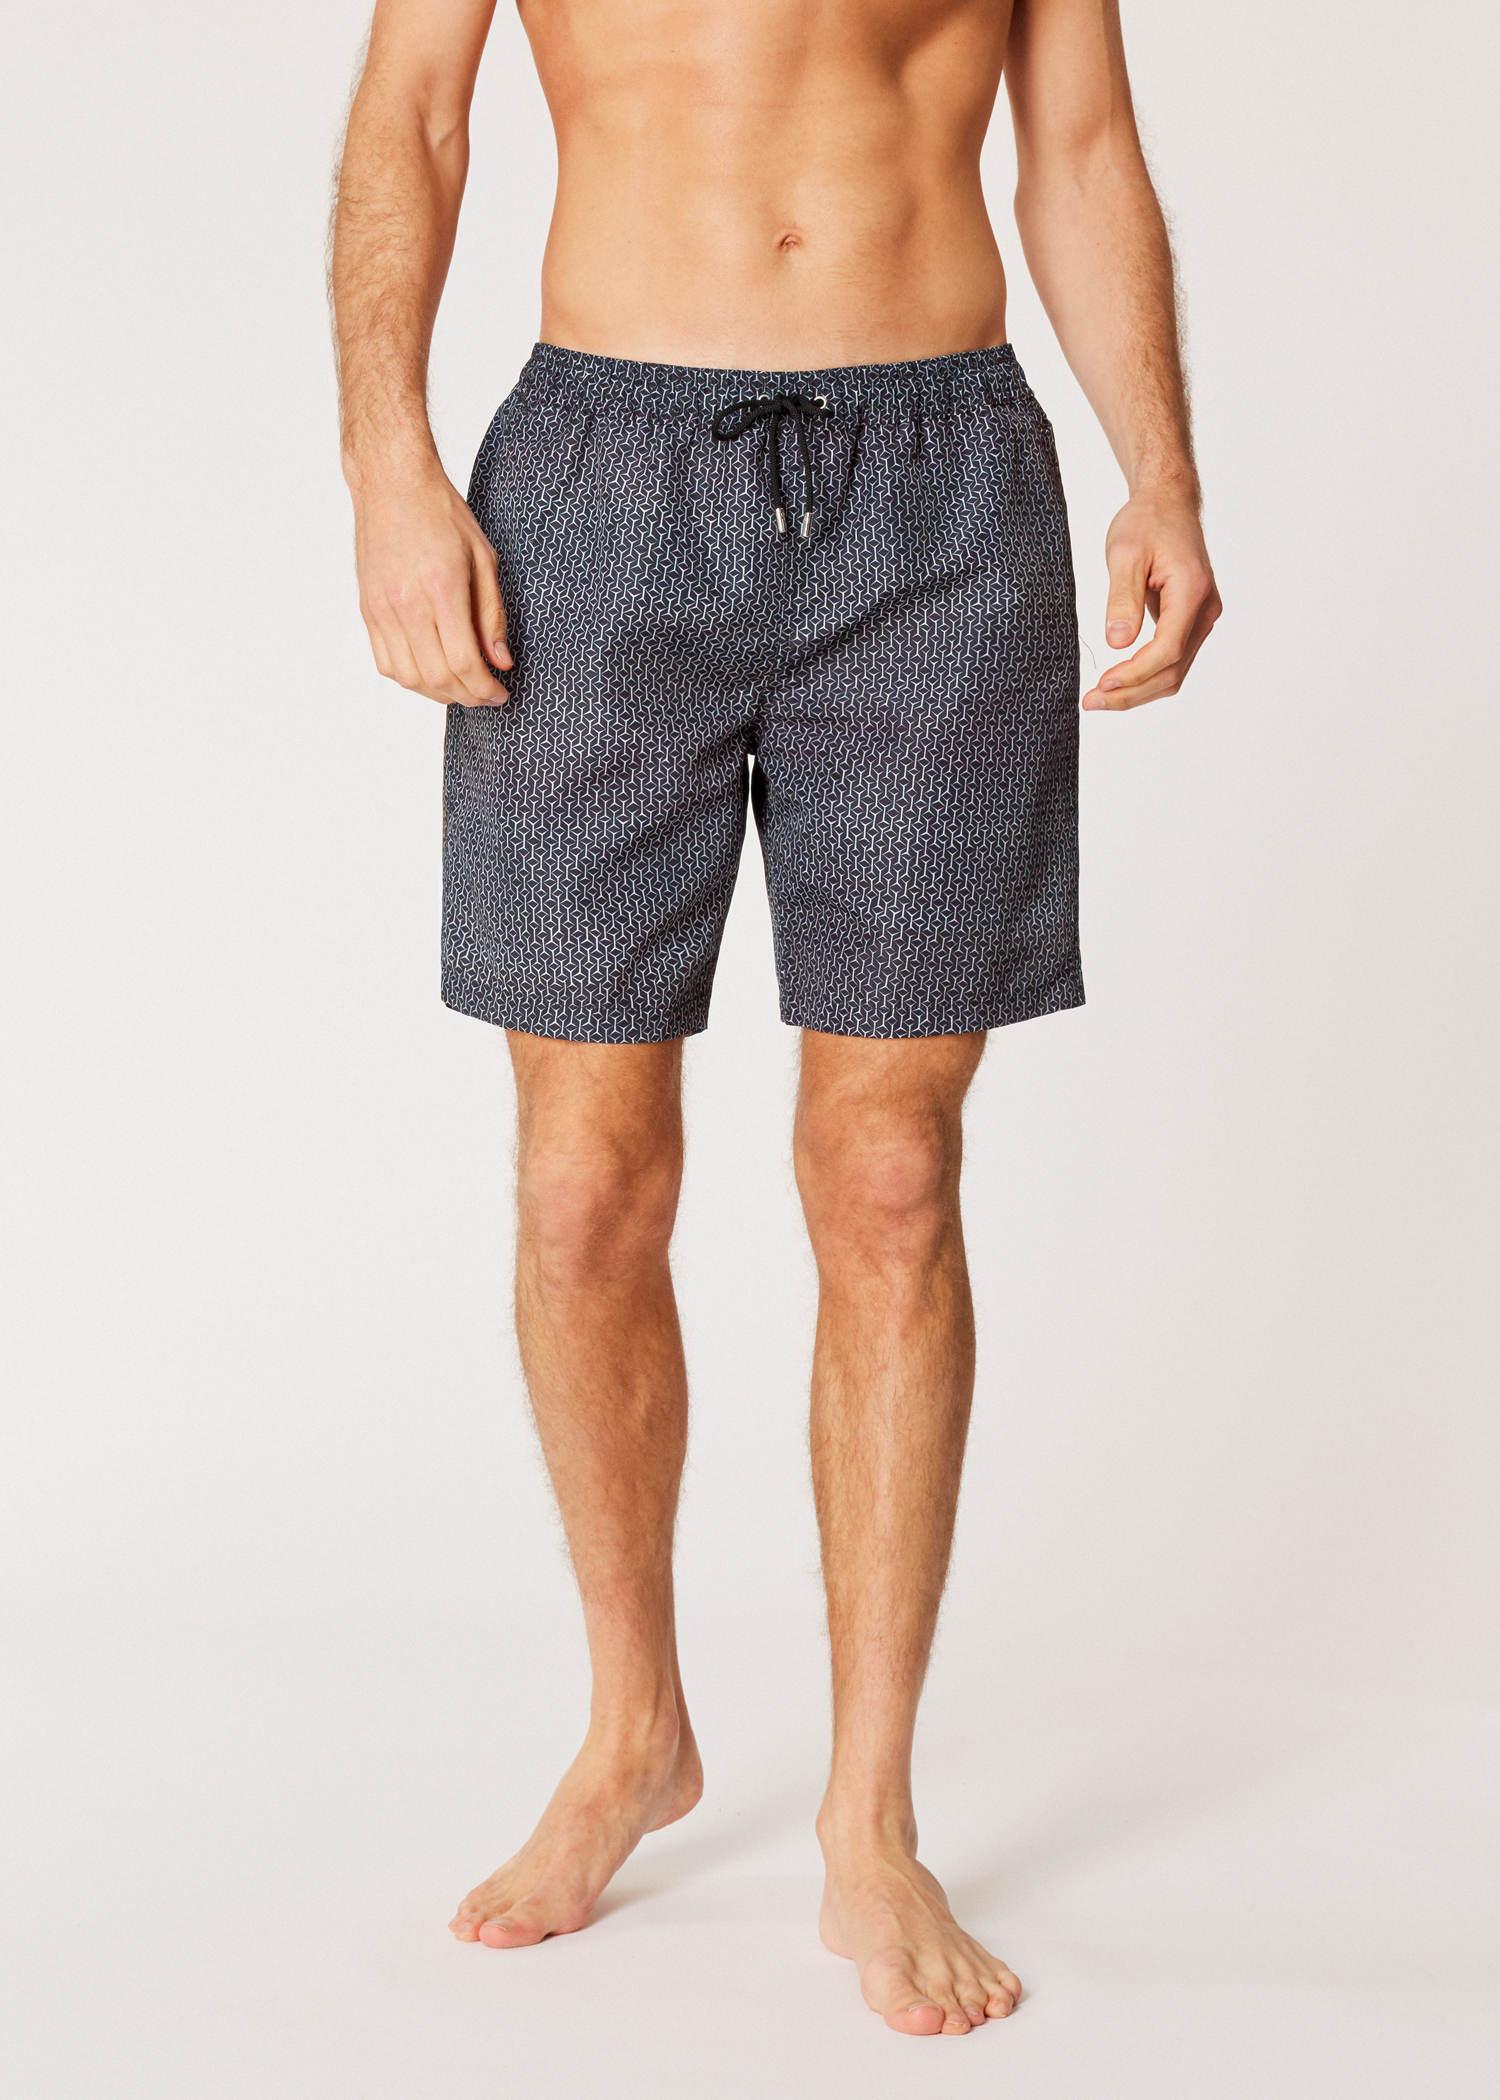 4b0a100c05 Model front View - Men's Black 'Geometric' Print Long Swim Shorts Paul Smith